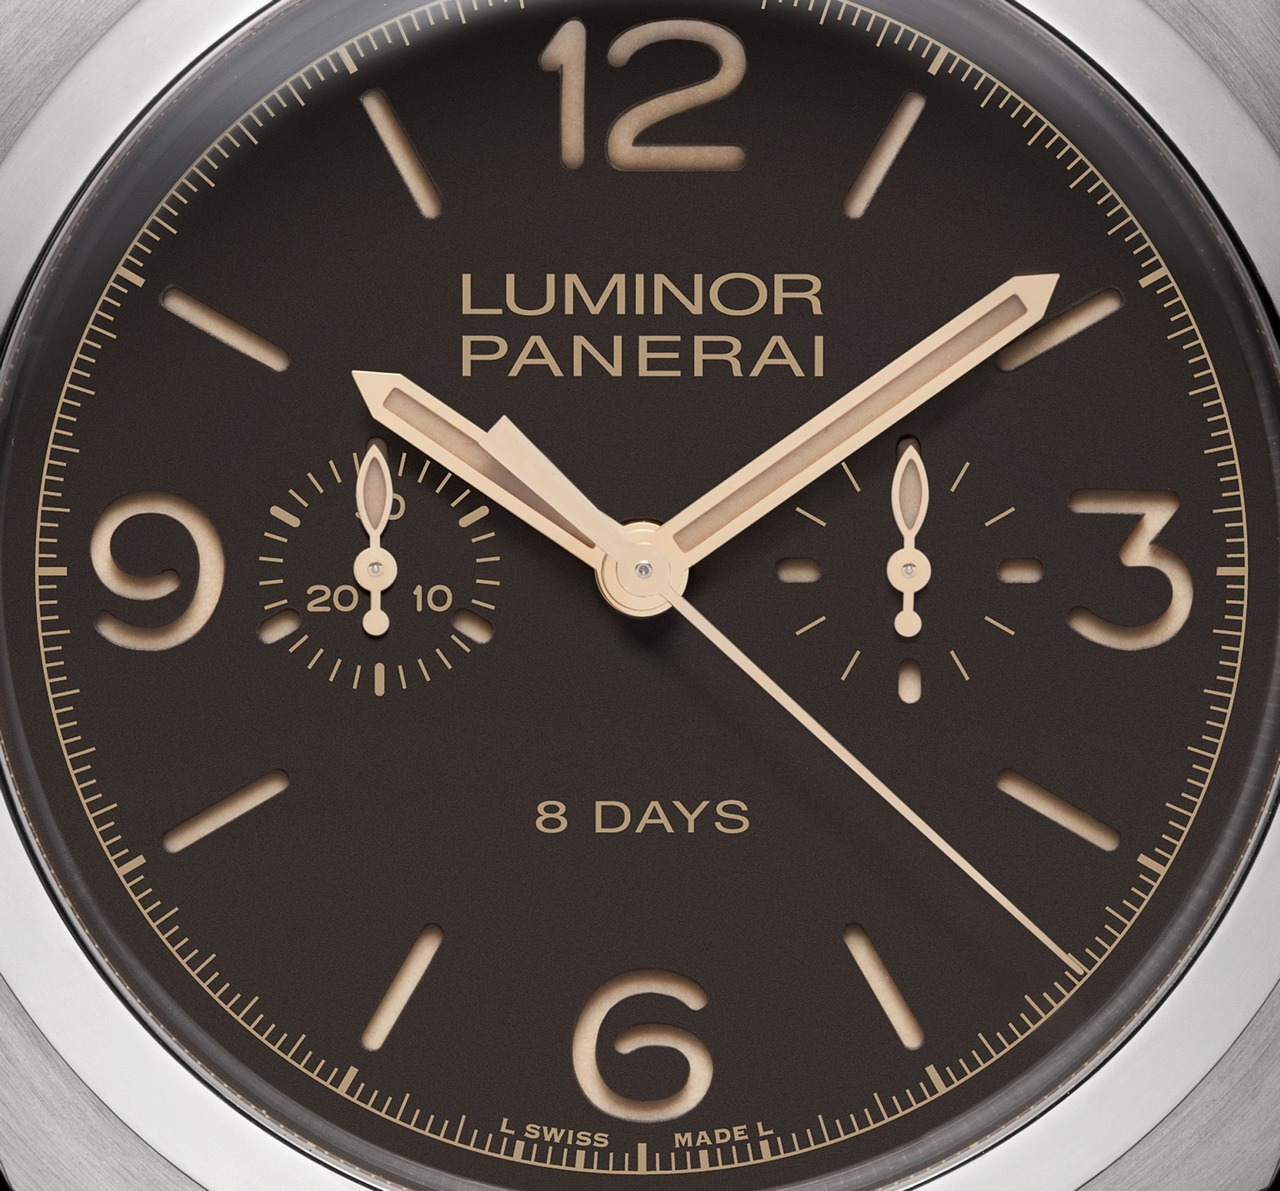 sihh-2014-officine-panerai-luminor-1950-chrono-monopulsante-left-handed-8-days-titanio-47mm-limited-edition-pam579-prezzo-price_0-100_2